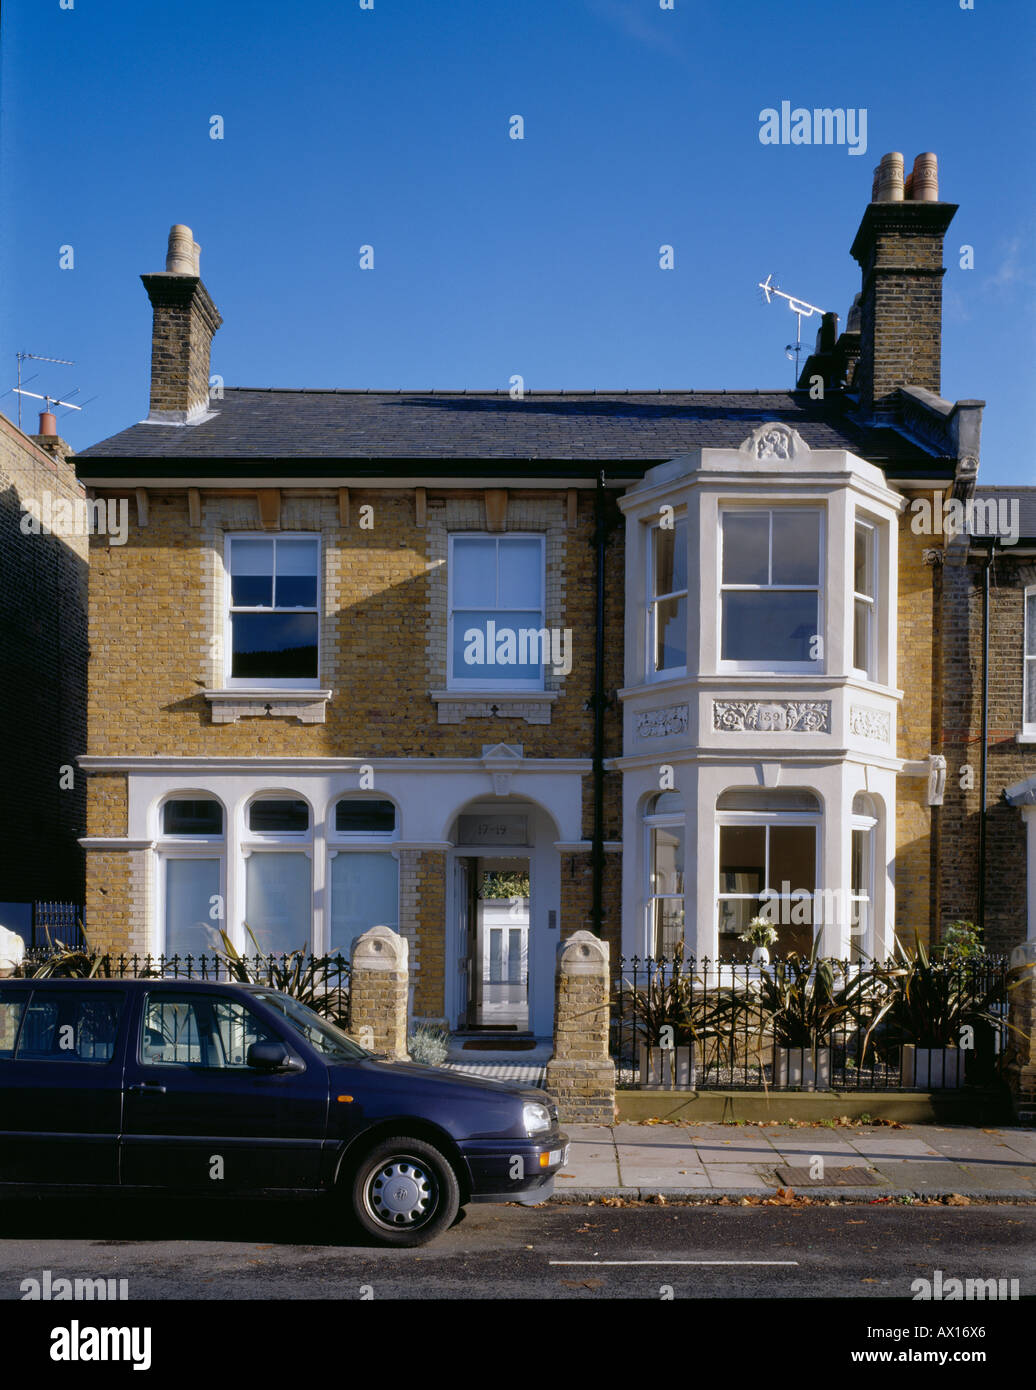 PRIVATE HOUSE, LONDON, UK - Stock Image